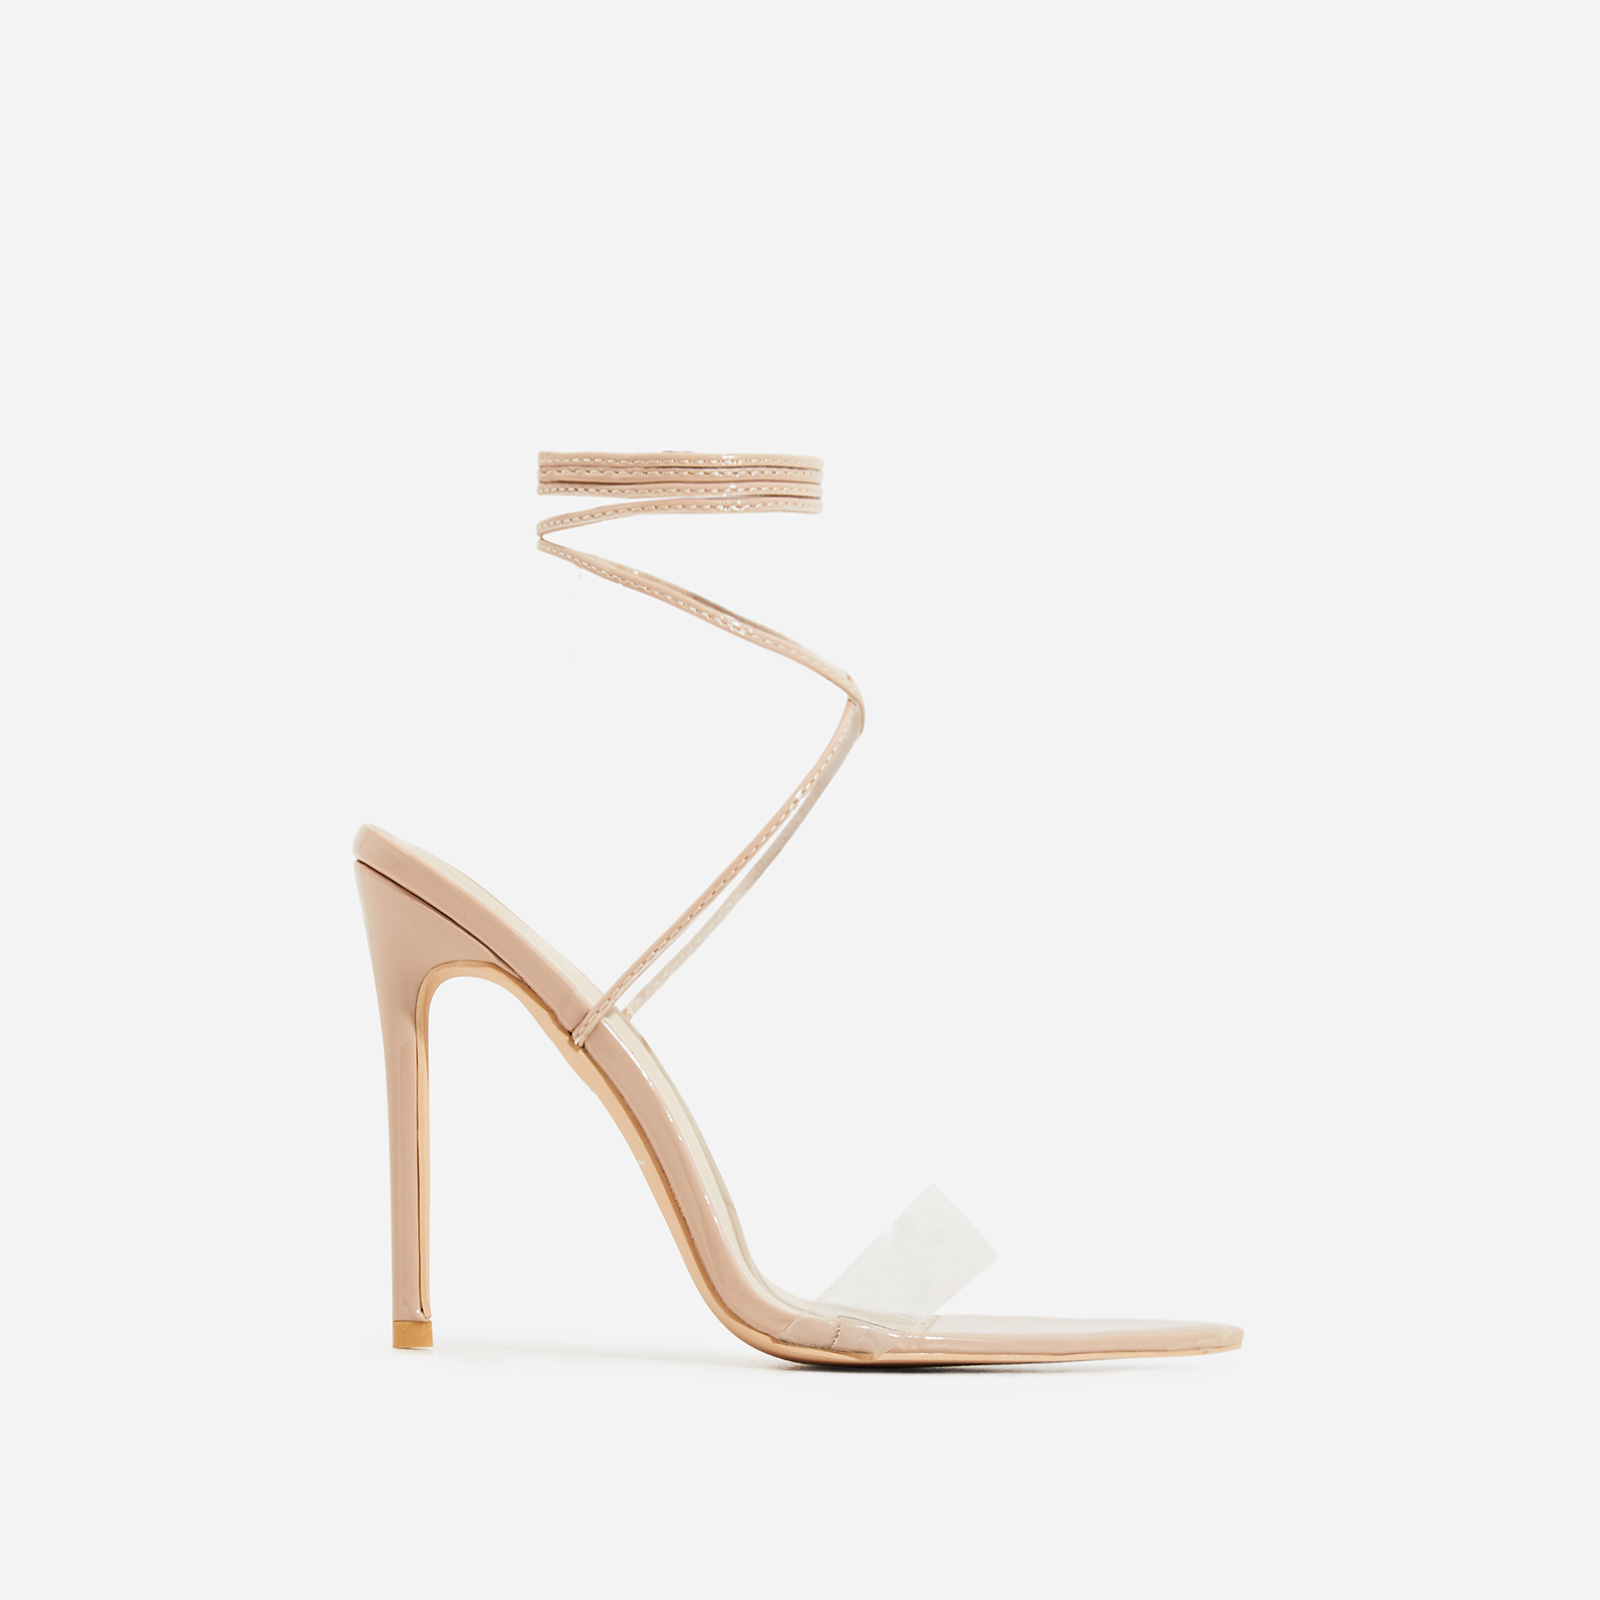 Miami Lace Up Perspex Pointed Heel In Nude Patent